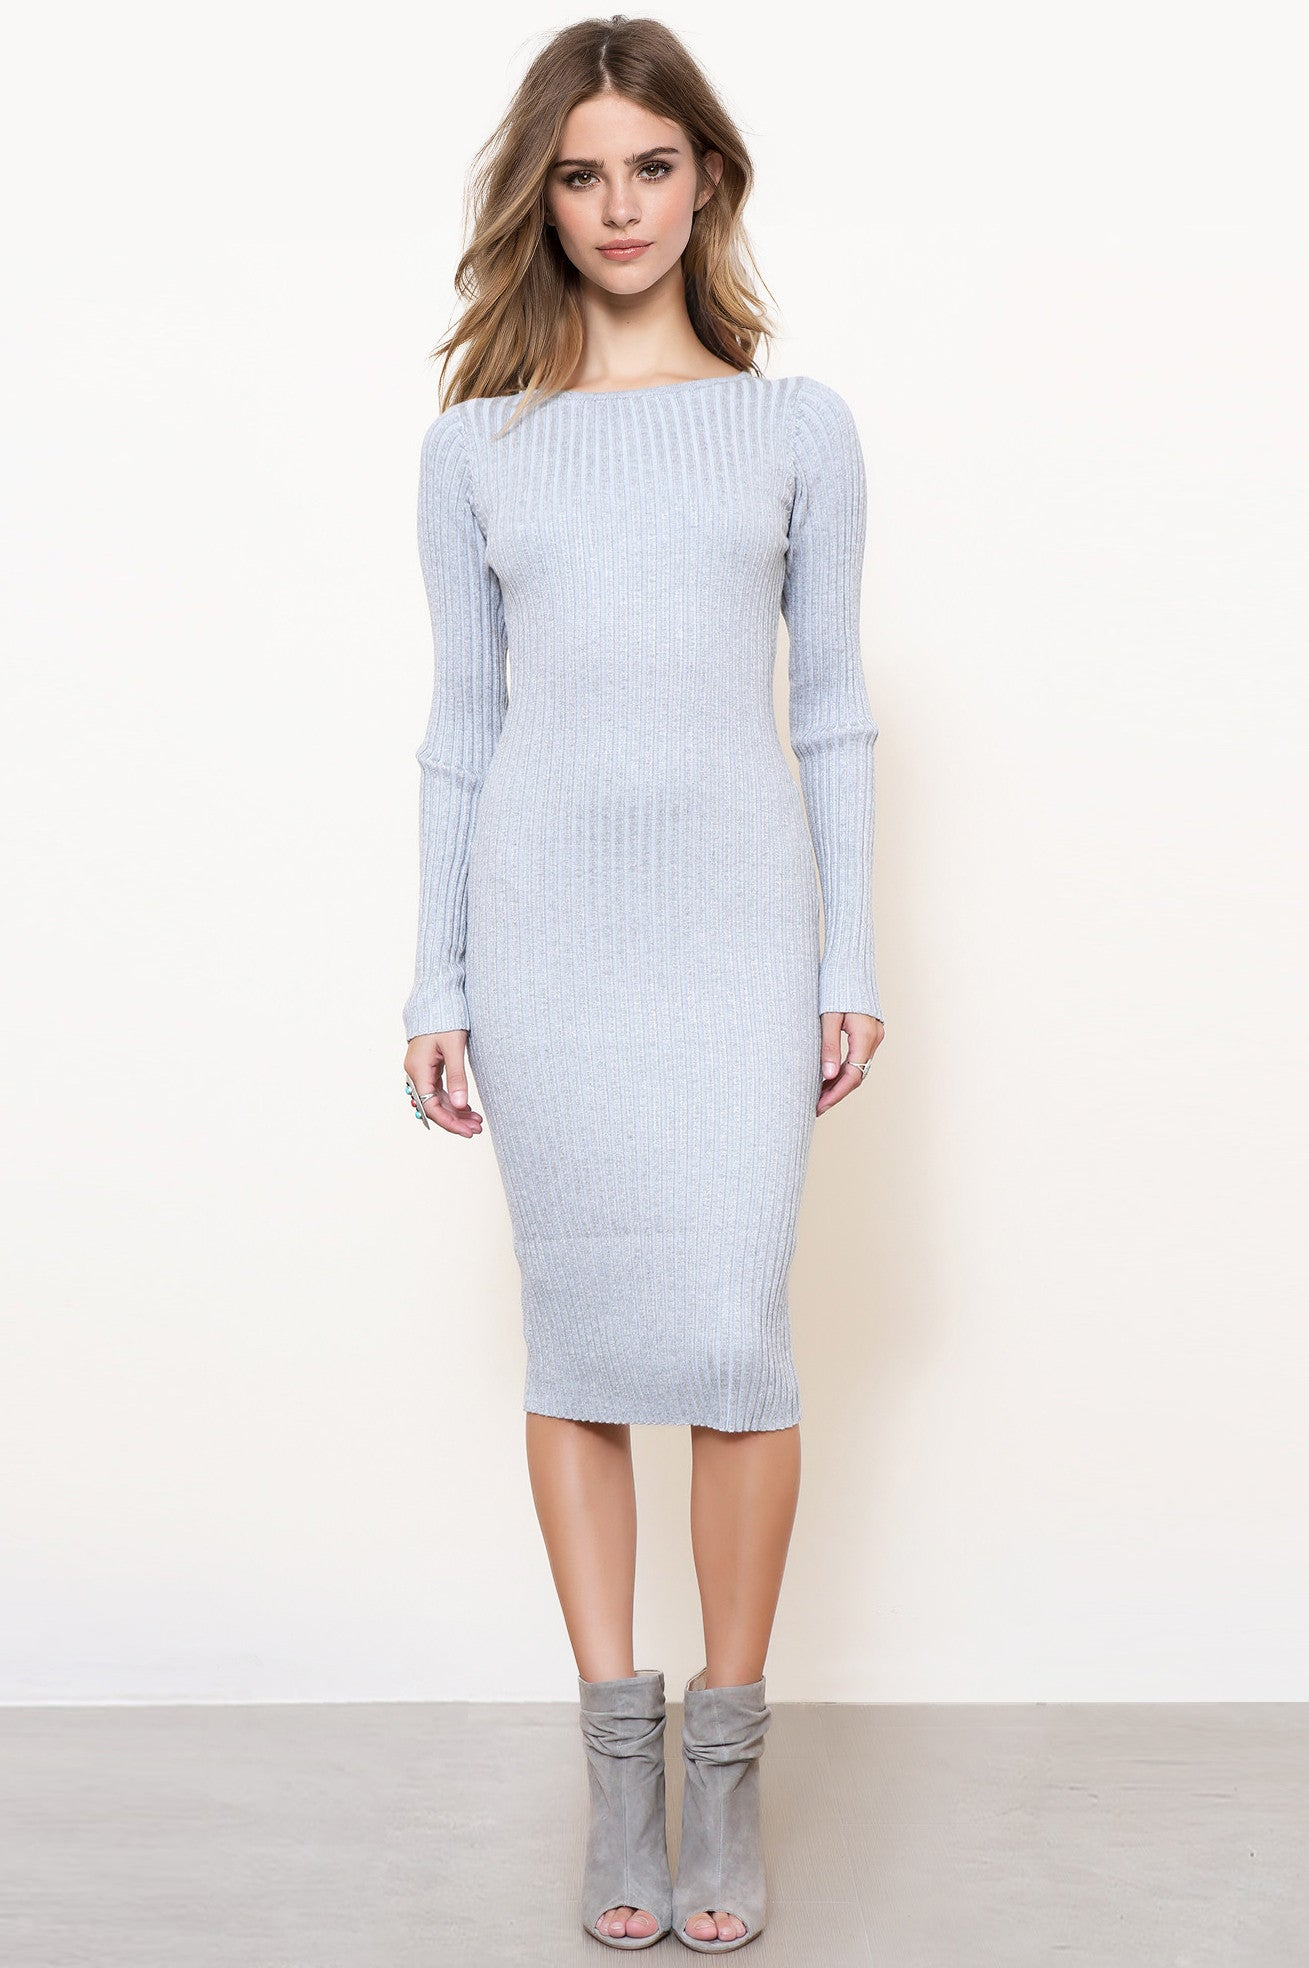 Long sleeve bodycon midi sweater dress in grey.  Front view